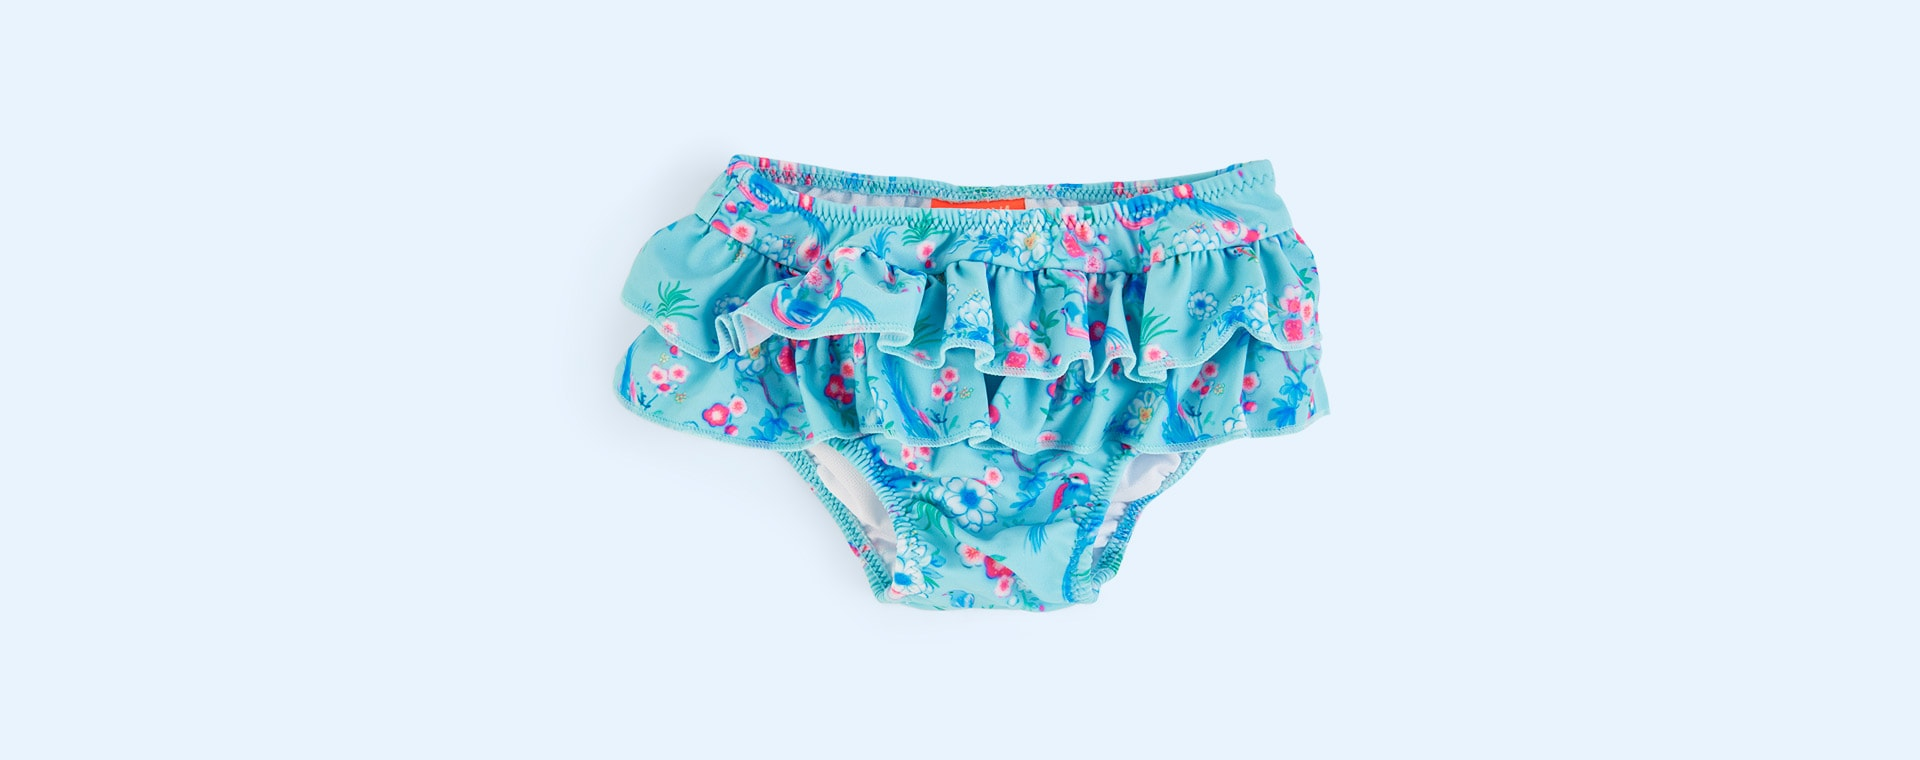 47d007fb4f Buy the Sunuva Baby Girls Frill Nappy Pant at KIDLY UK